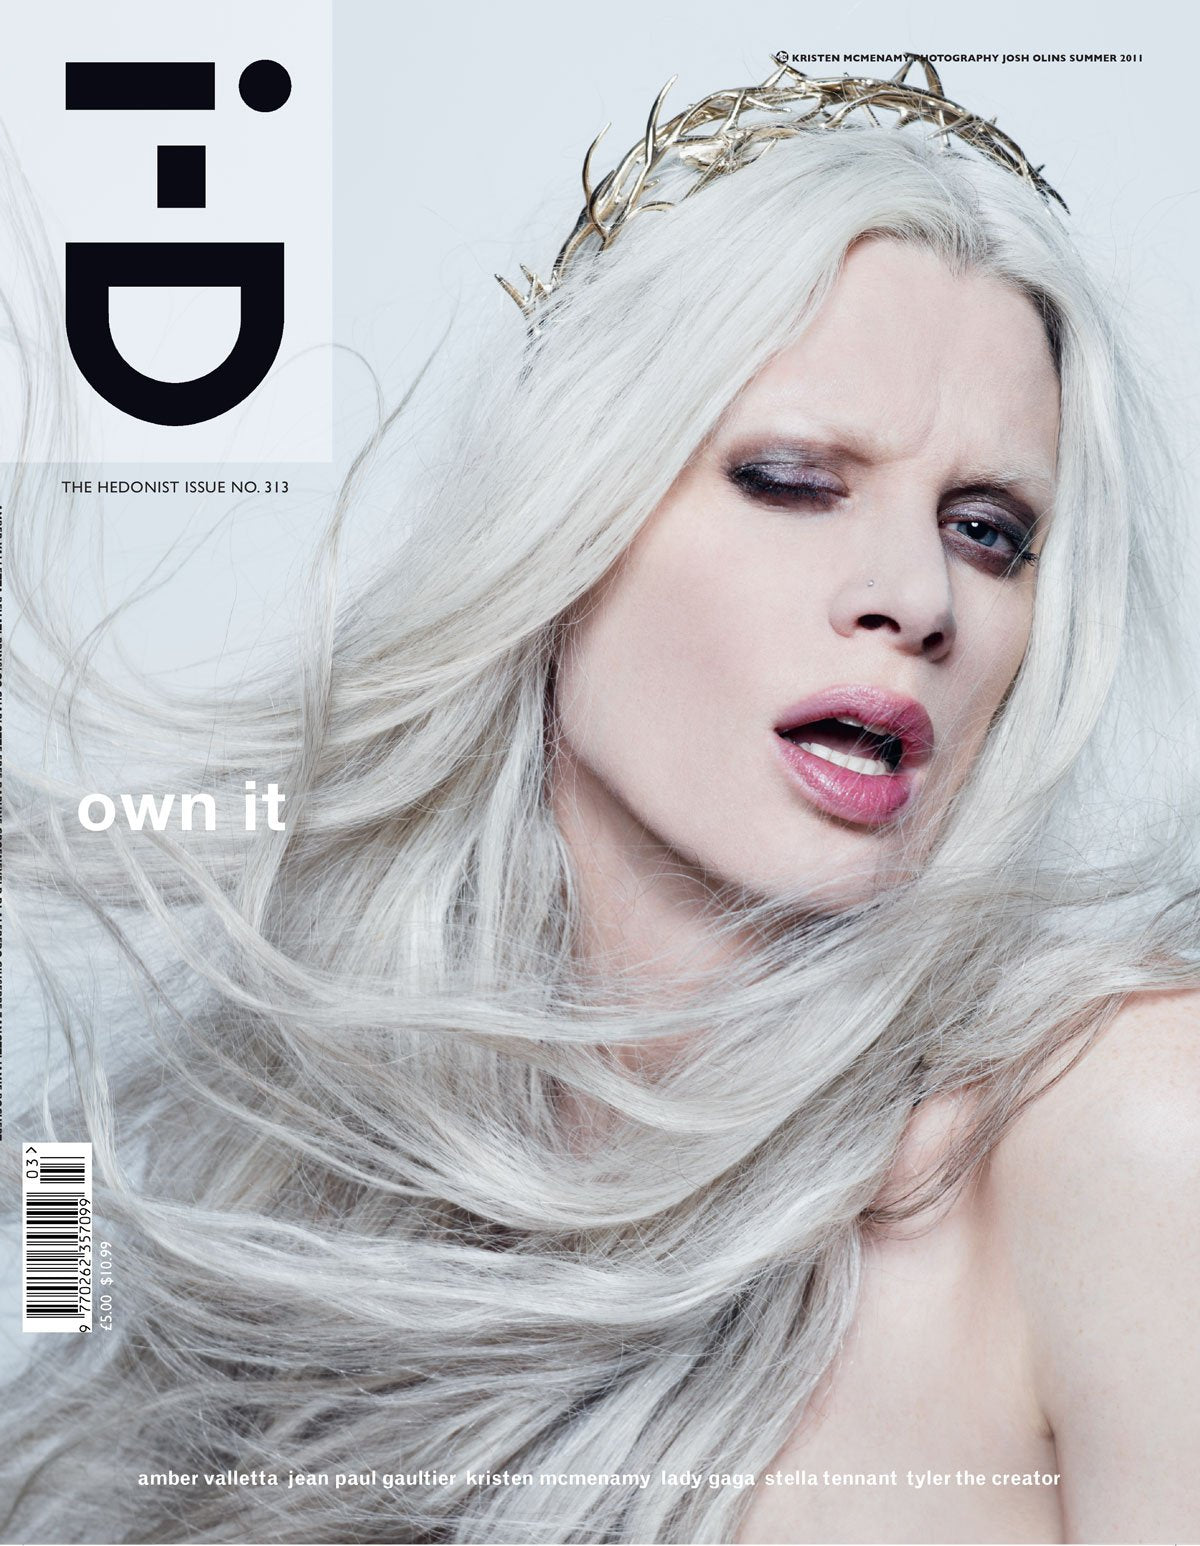 313. THE HEDONIST ISSUE